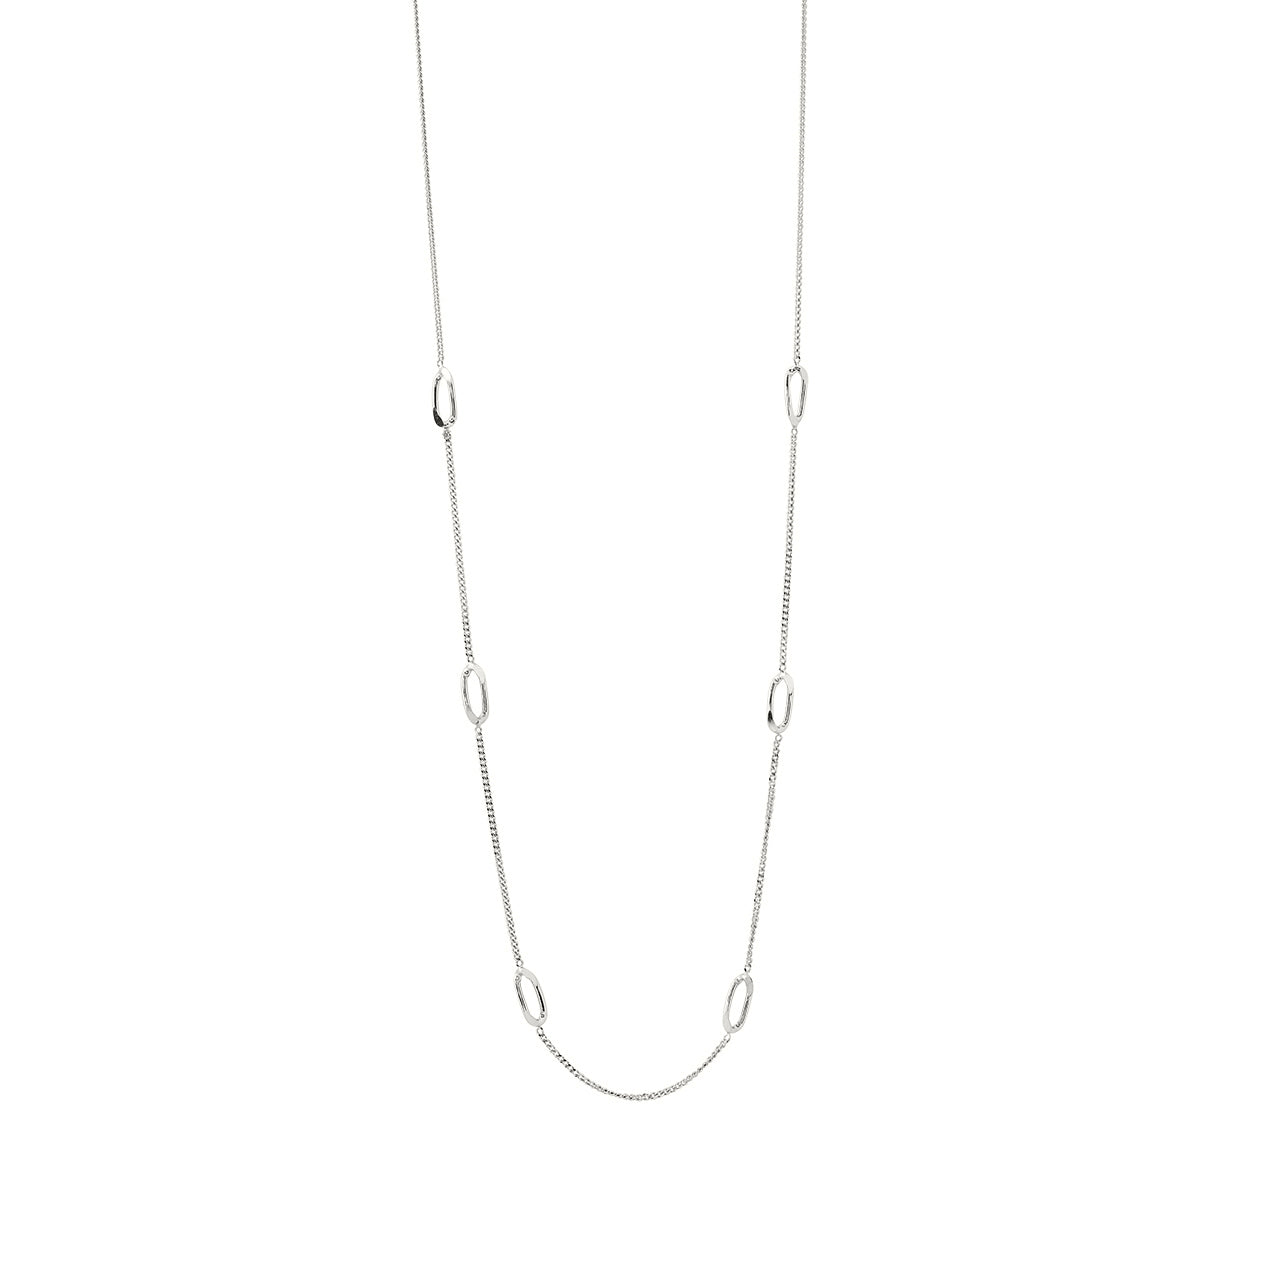 silver elegant long chain necklace